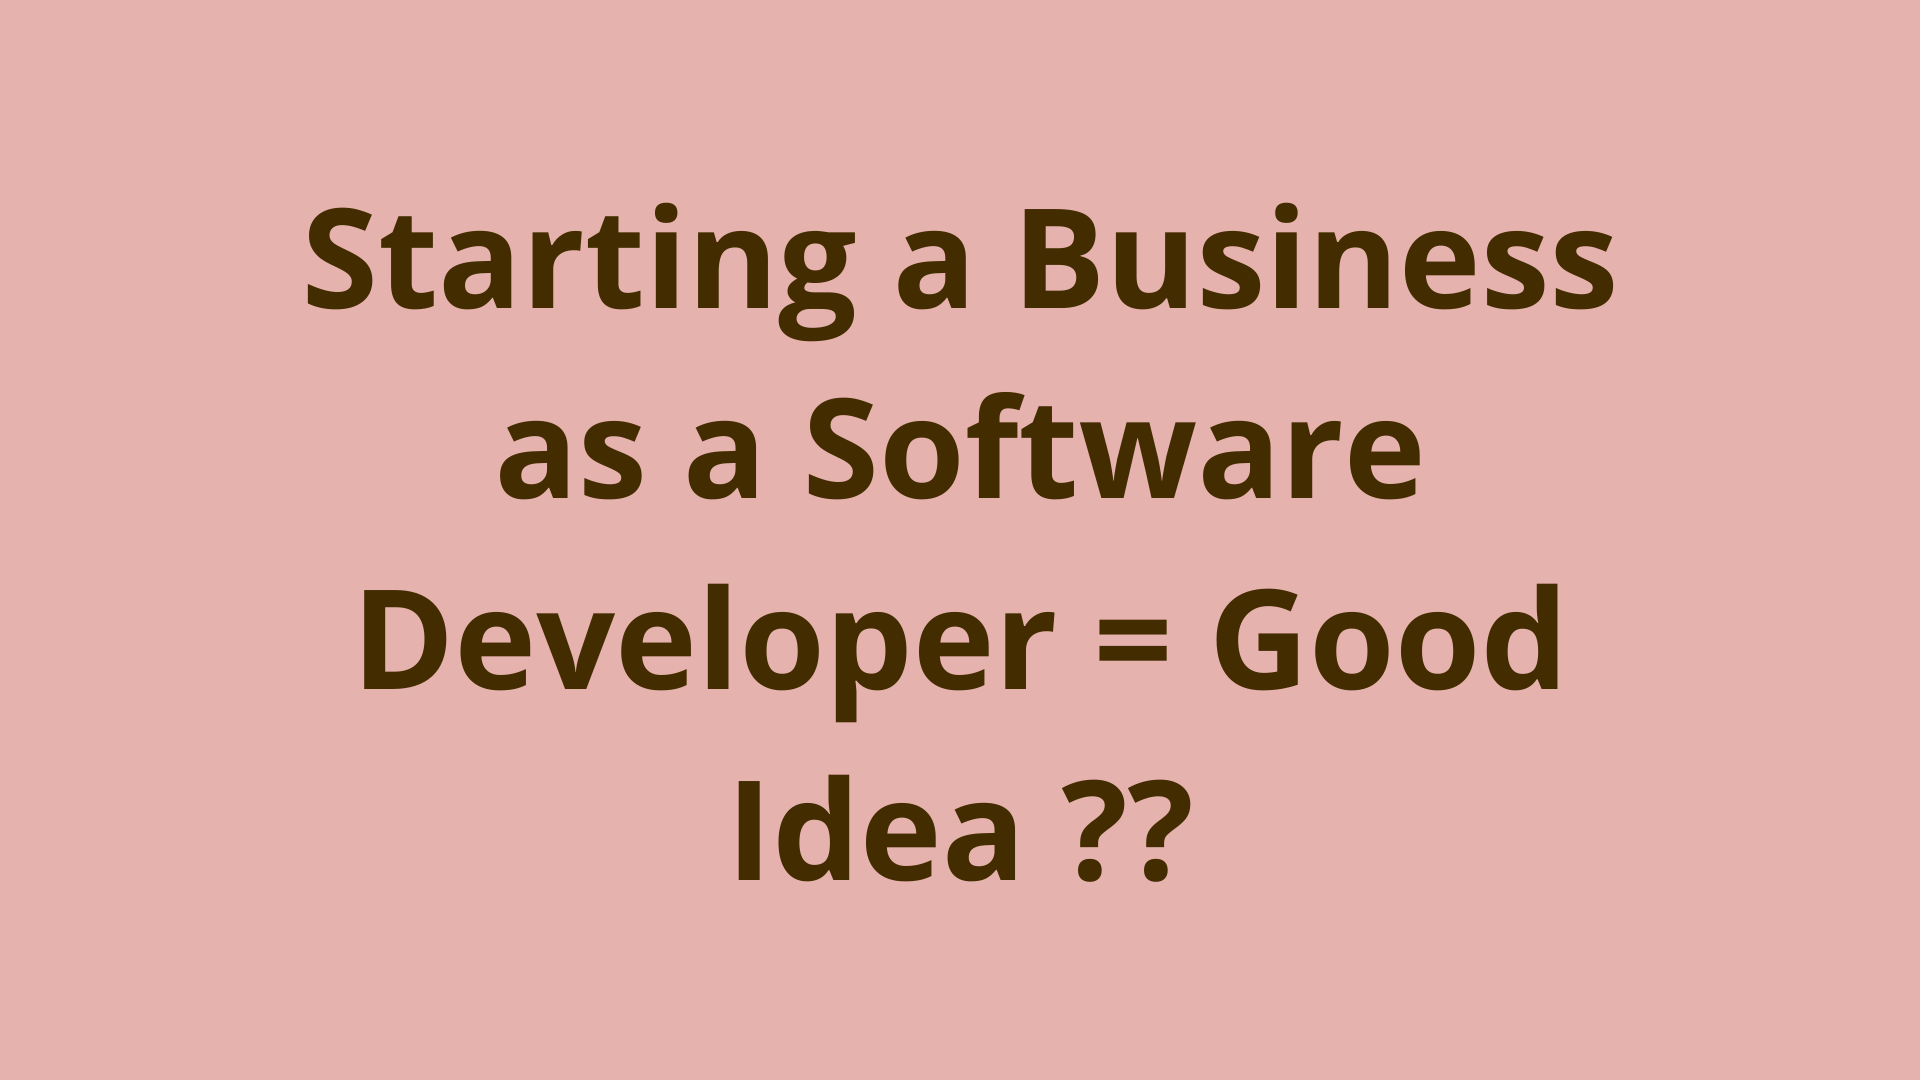 Image of Why starting a business as a software developer is a good idea